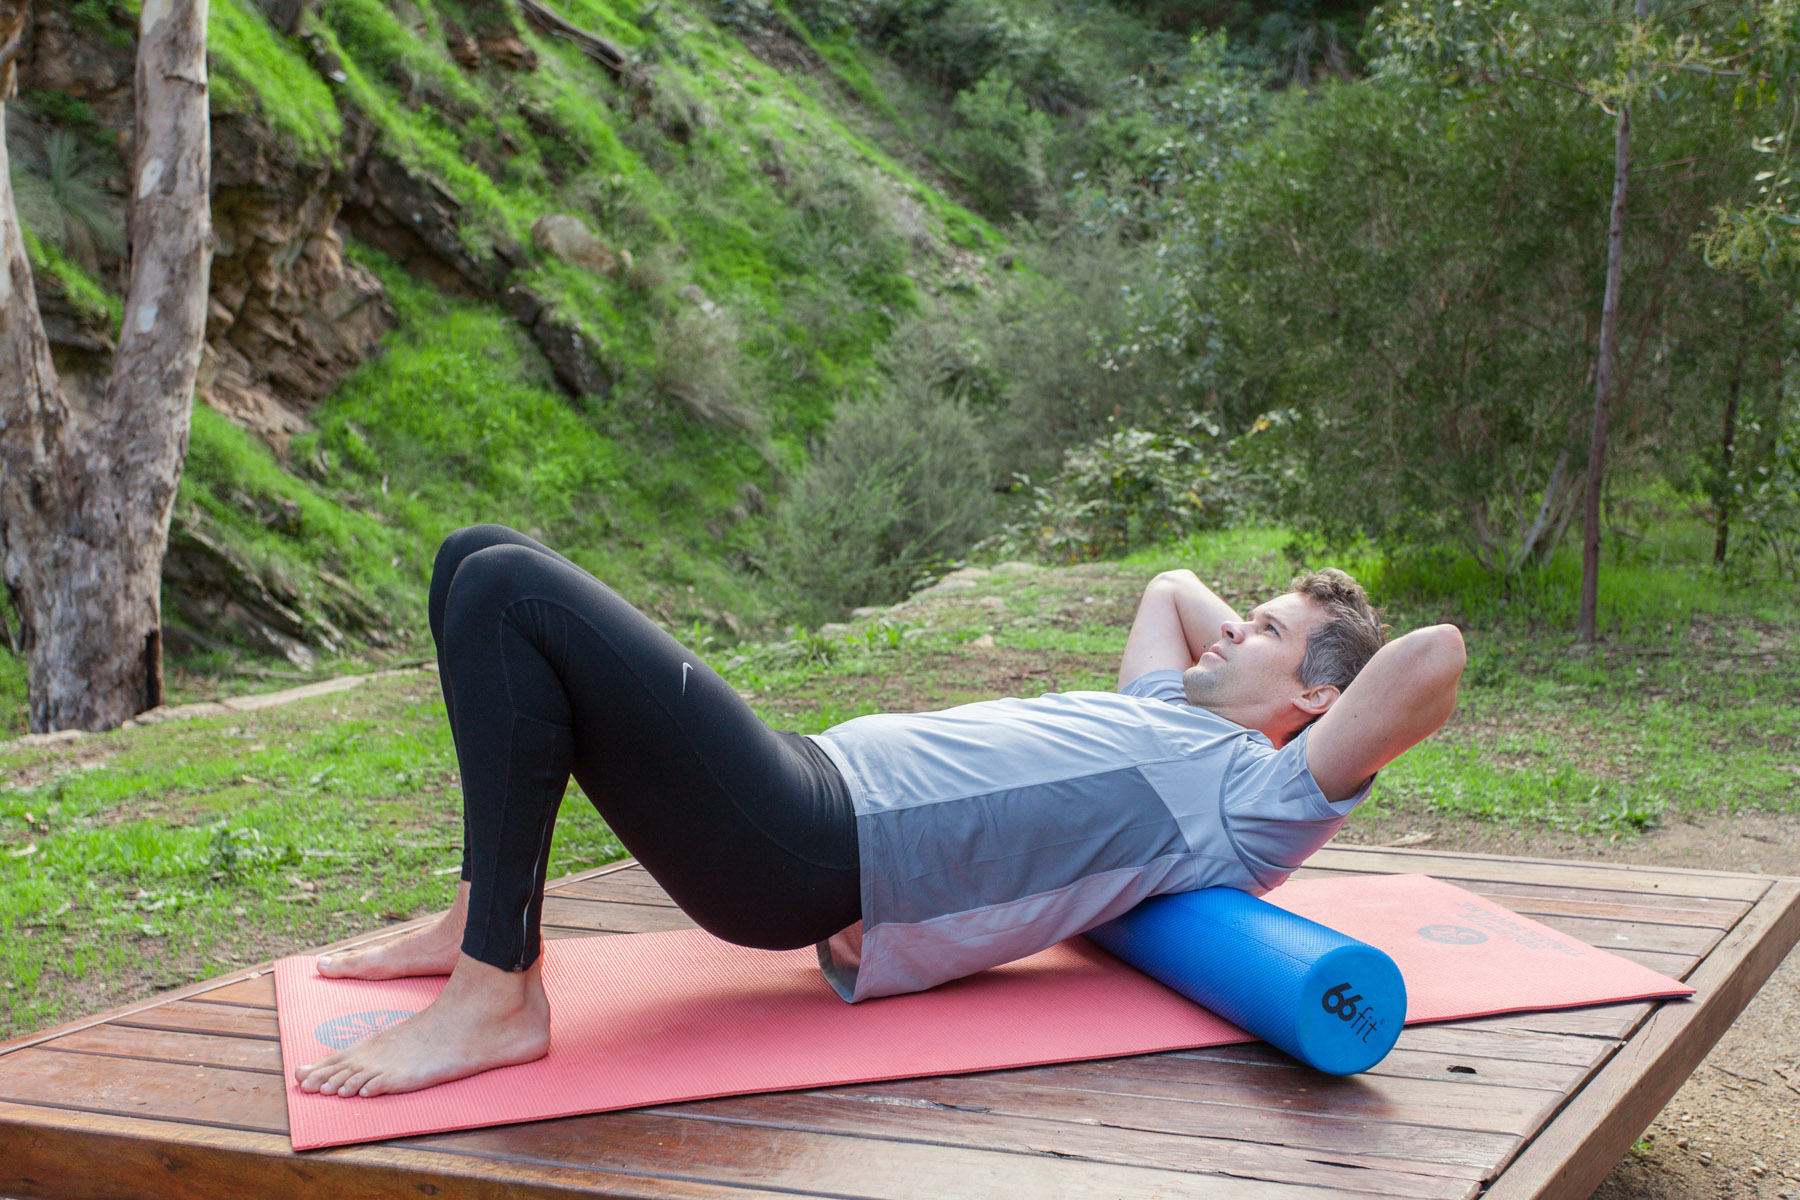 Lie with a foam roller in your mid-back, and hug your arms across your chest to open up the upper back. Lift your hips off the mat, and roll back and forth for about 30 seconds, pushing with your legs. You may feel a few cracks and pops which is a great sign your are releasing the joint stiffness.